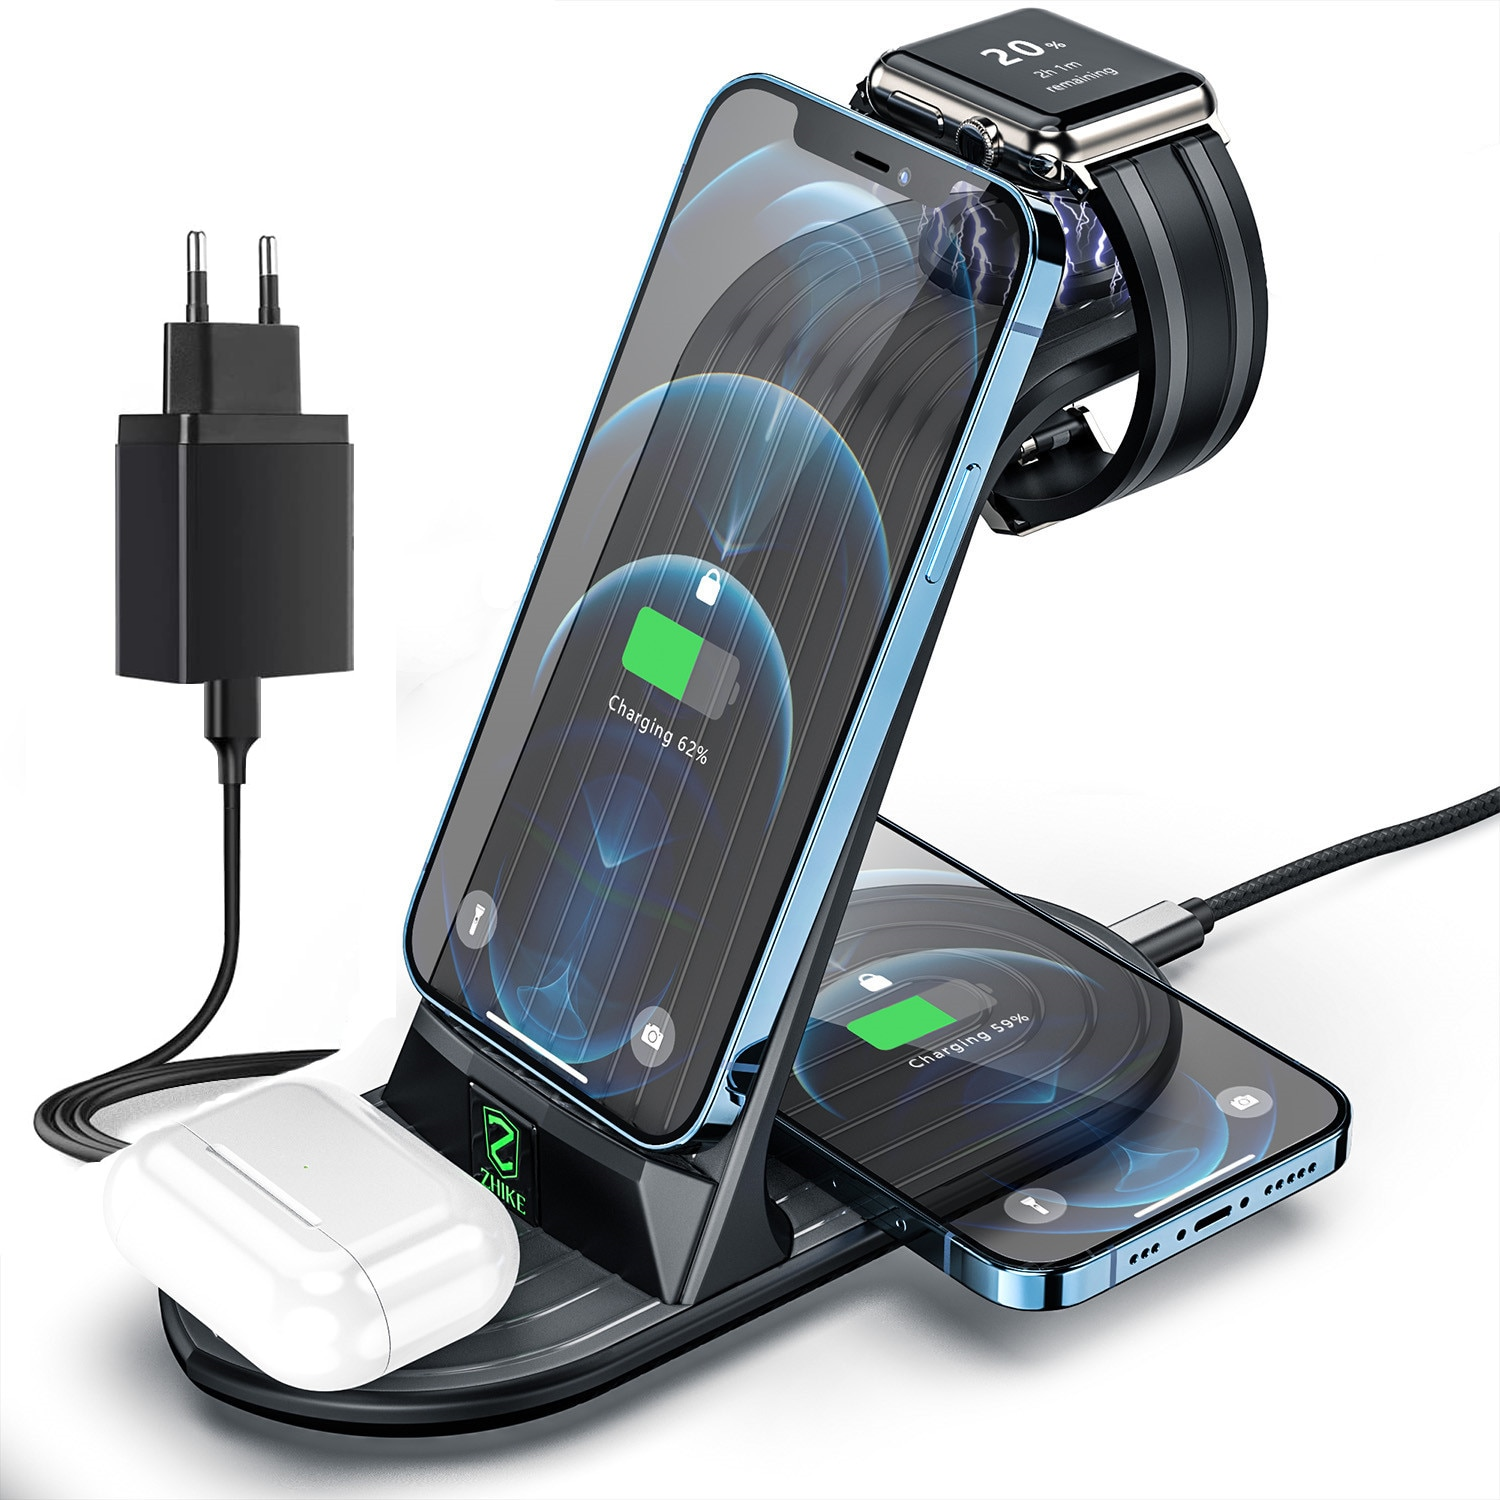 Wireless Charger, 4 in 1 Fast Charging Station for Apple Watch Series 6/5/4/3 iPhone 12/11 Pro Max/S